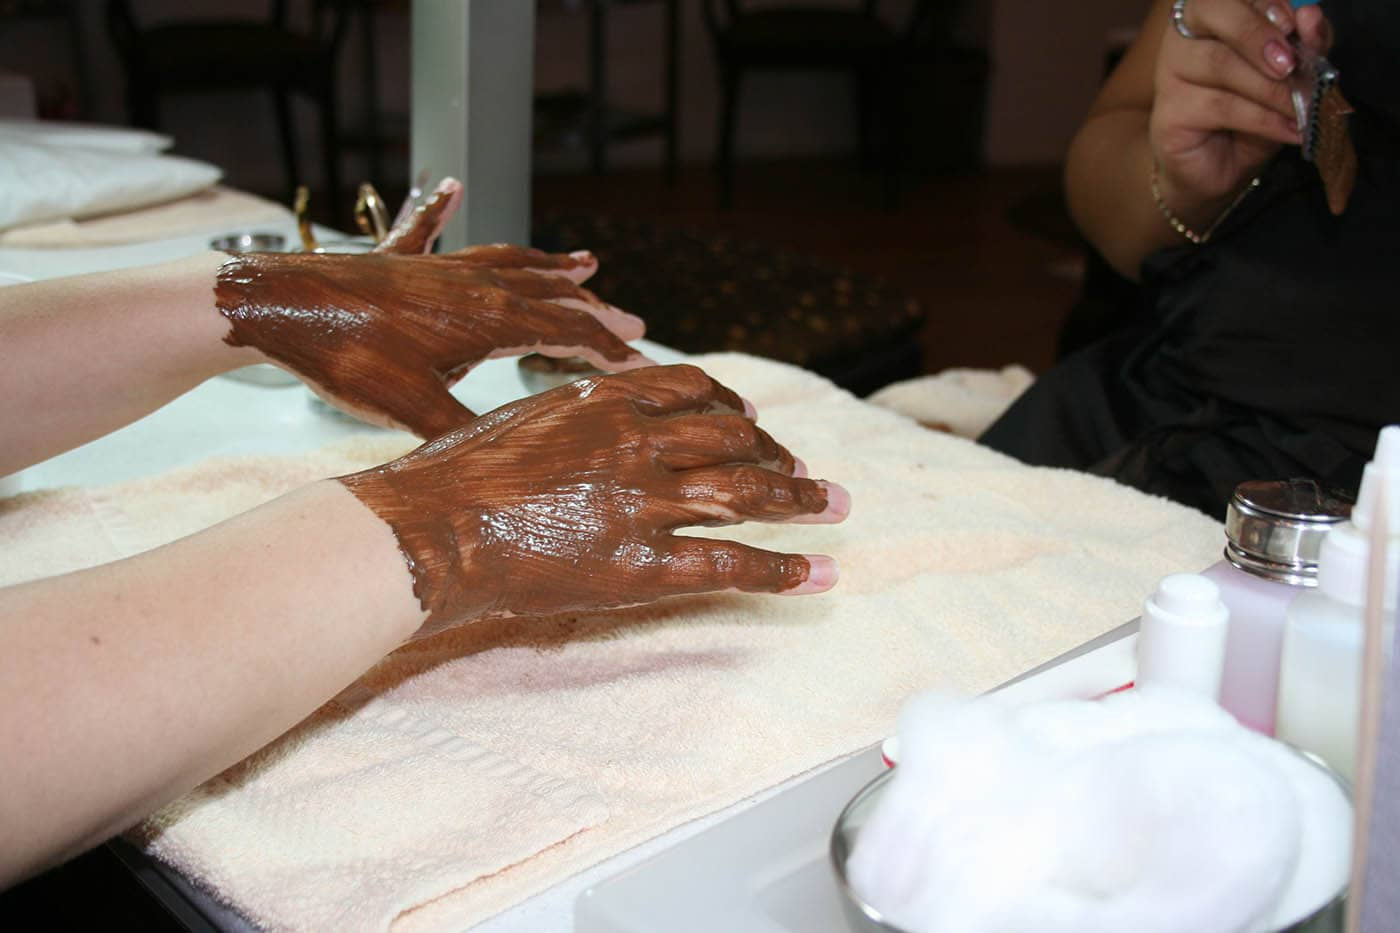 Chocolate signature manicure from Chocolate for Your Body Spa in Chicago, Illinois. Celebrating my 27th birthday.